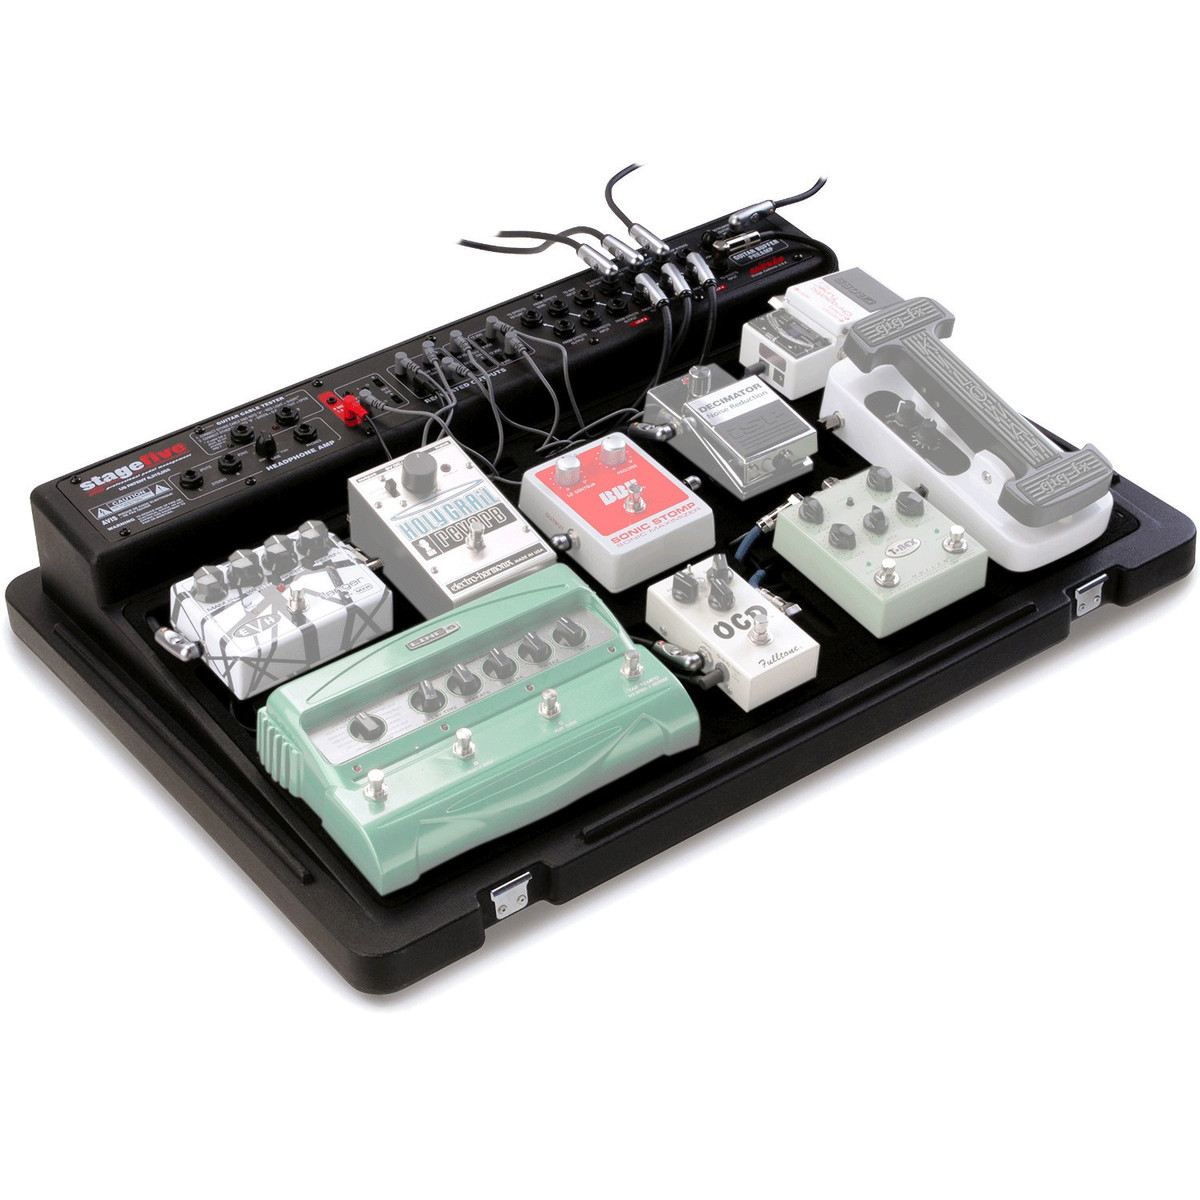 skb stagefive professional pedal board system uk power supply at. Black Bedroom Furniture Sets. Home Design Ideas